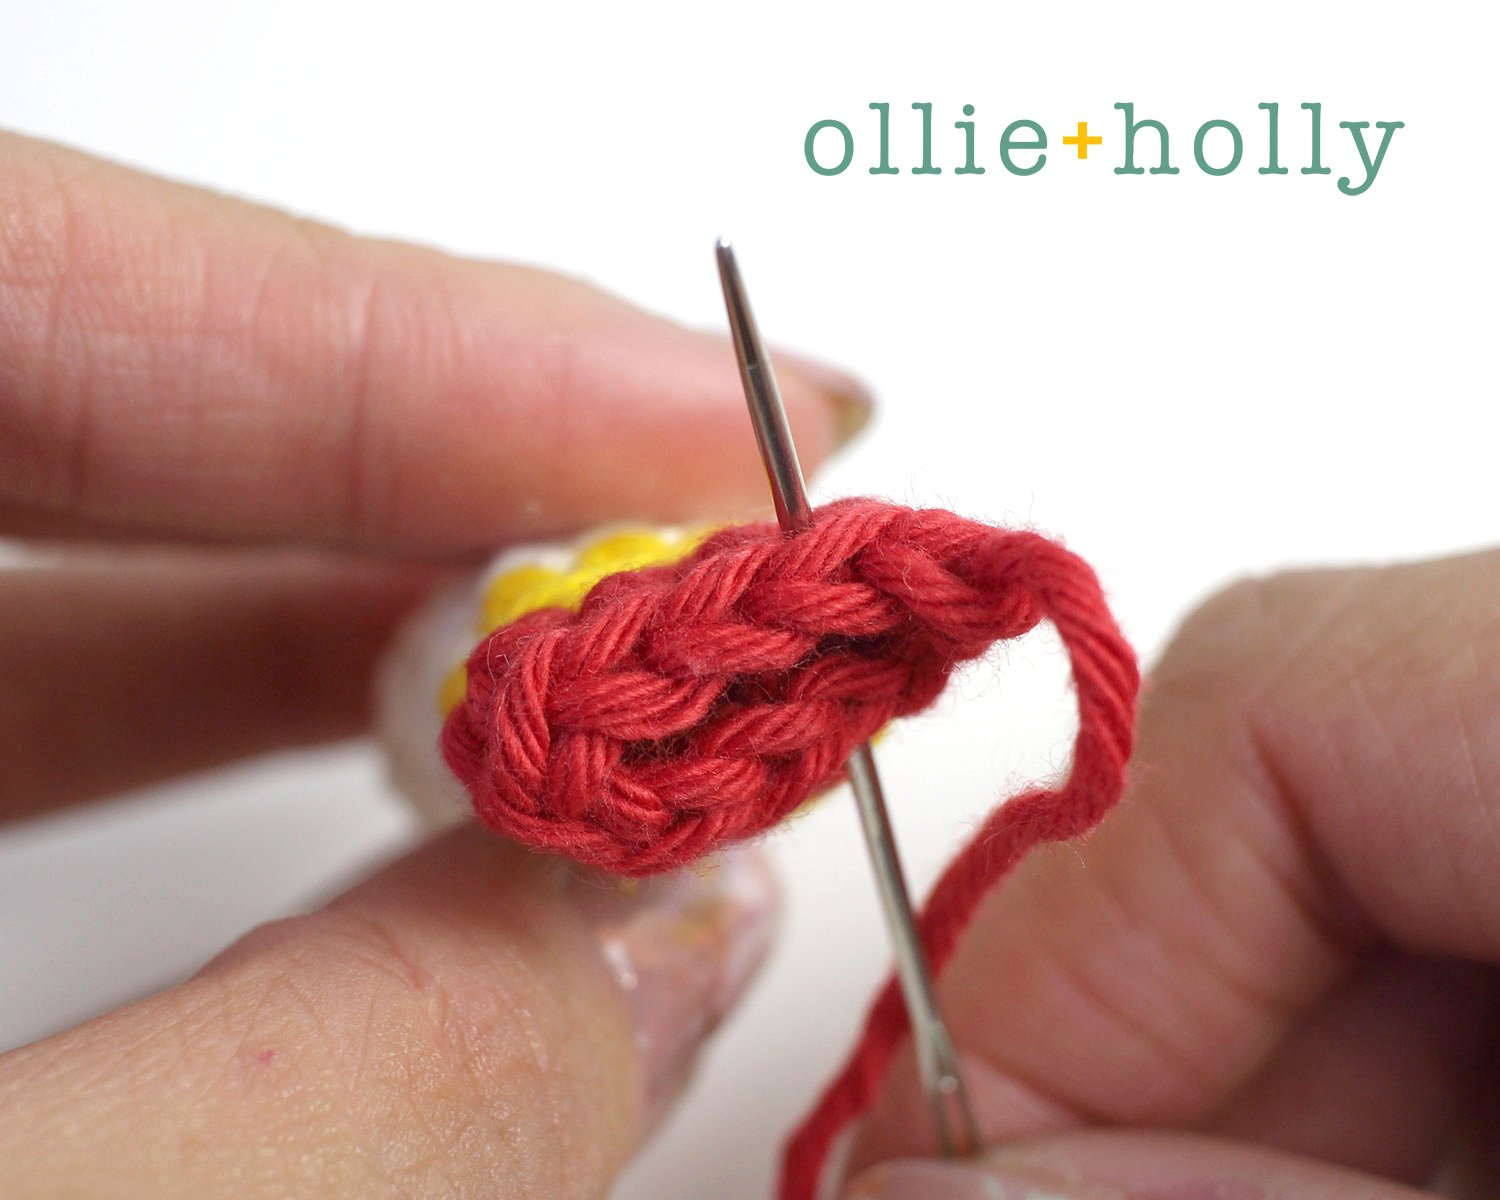 Free Year of the Ox Chinese Lunar New Year Amigurumi Crochet Pattern Step 10